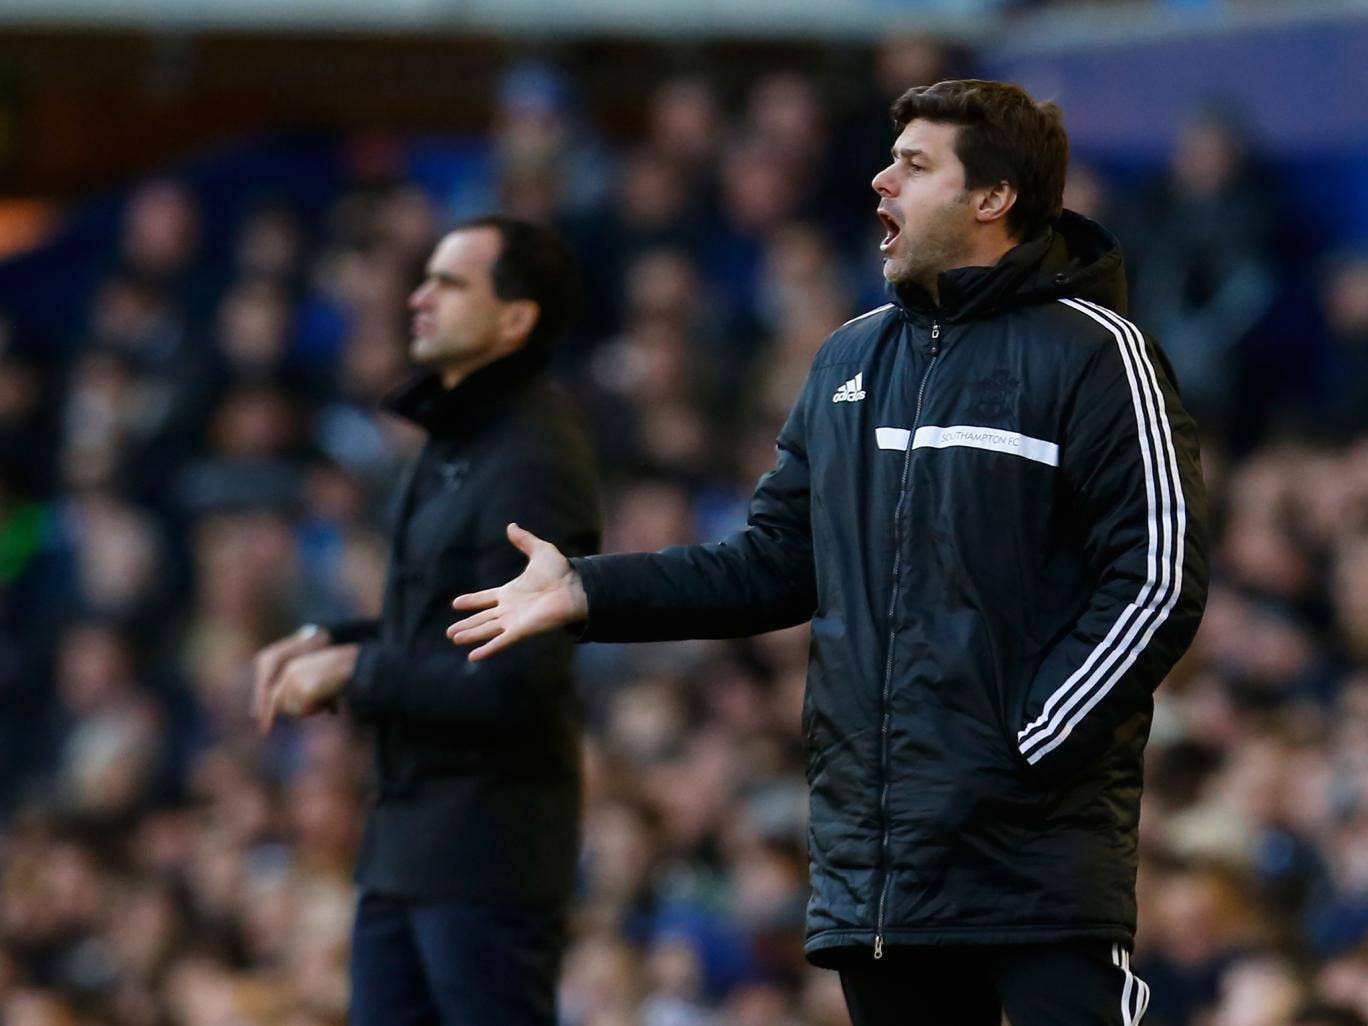 Mauricio Pochettino gestures from the sidelines during Southampton's 2-1 defeat to Everton